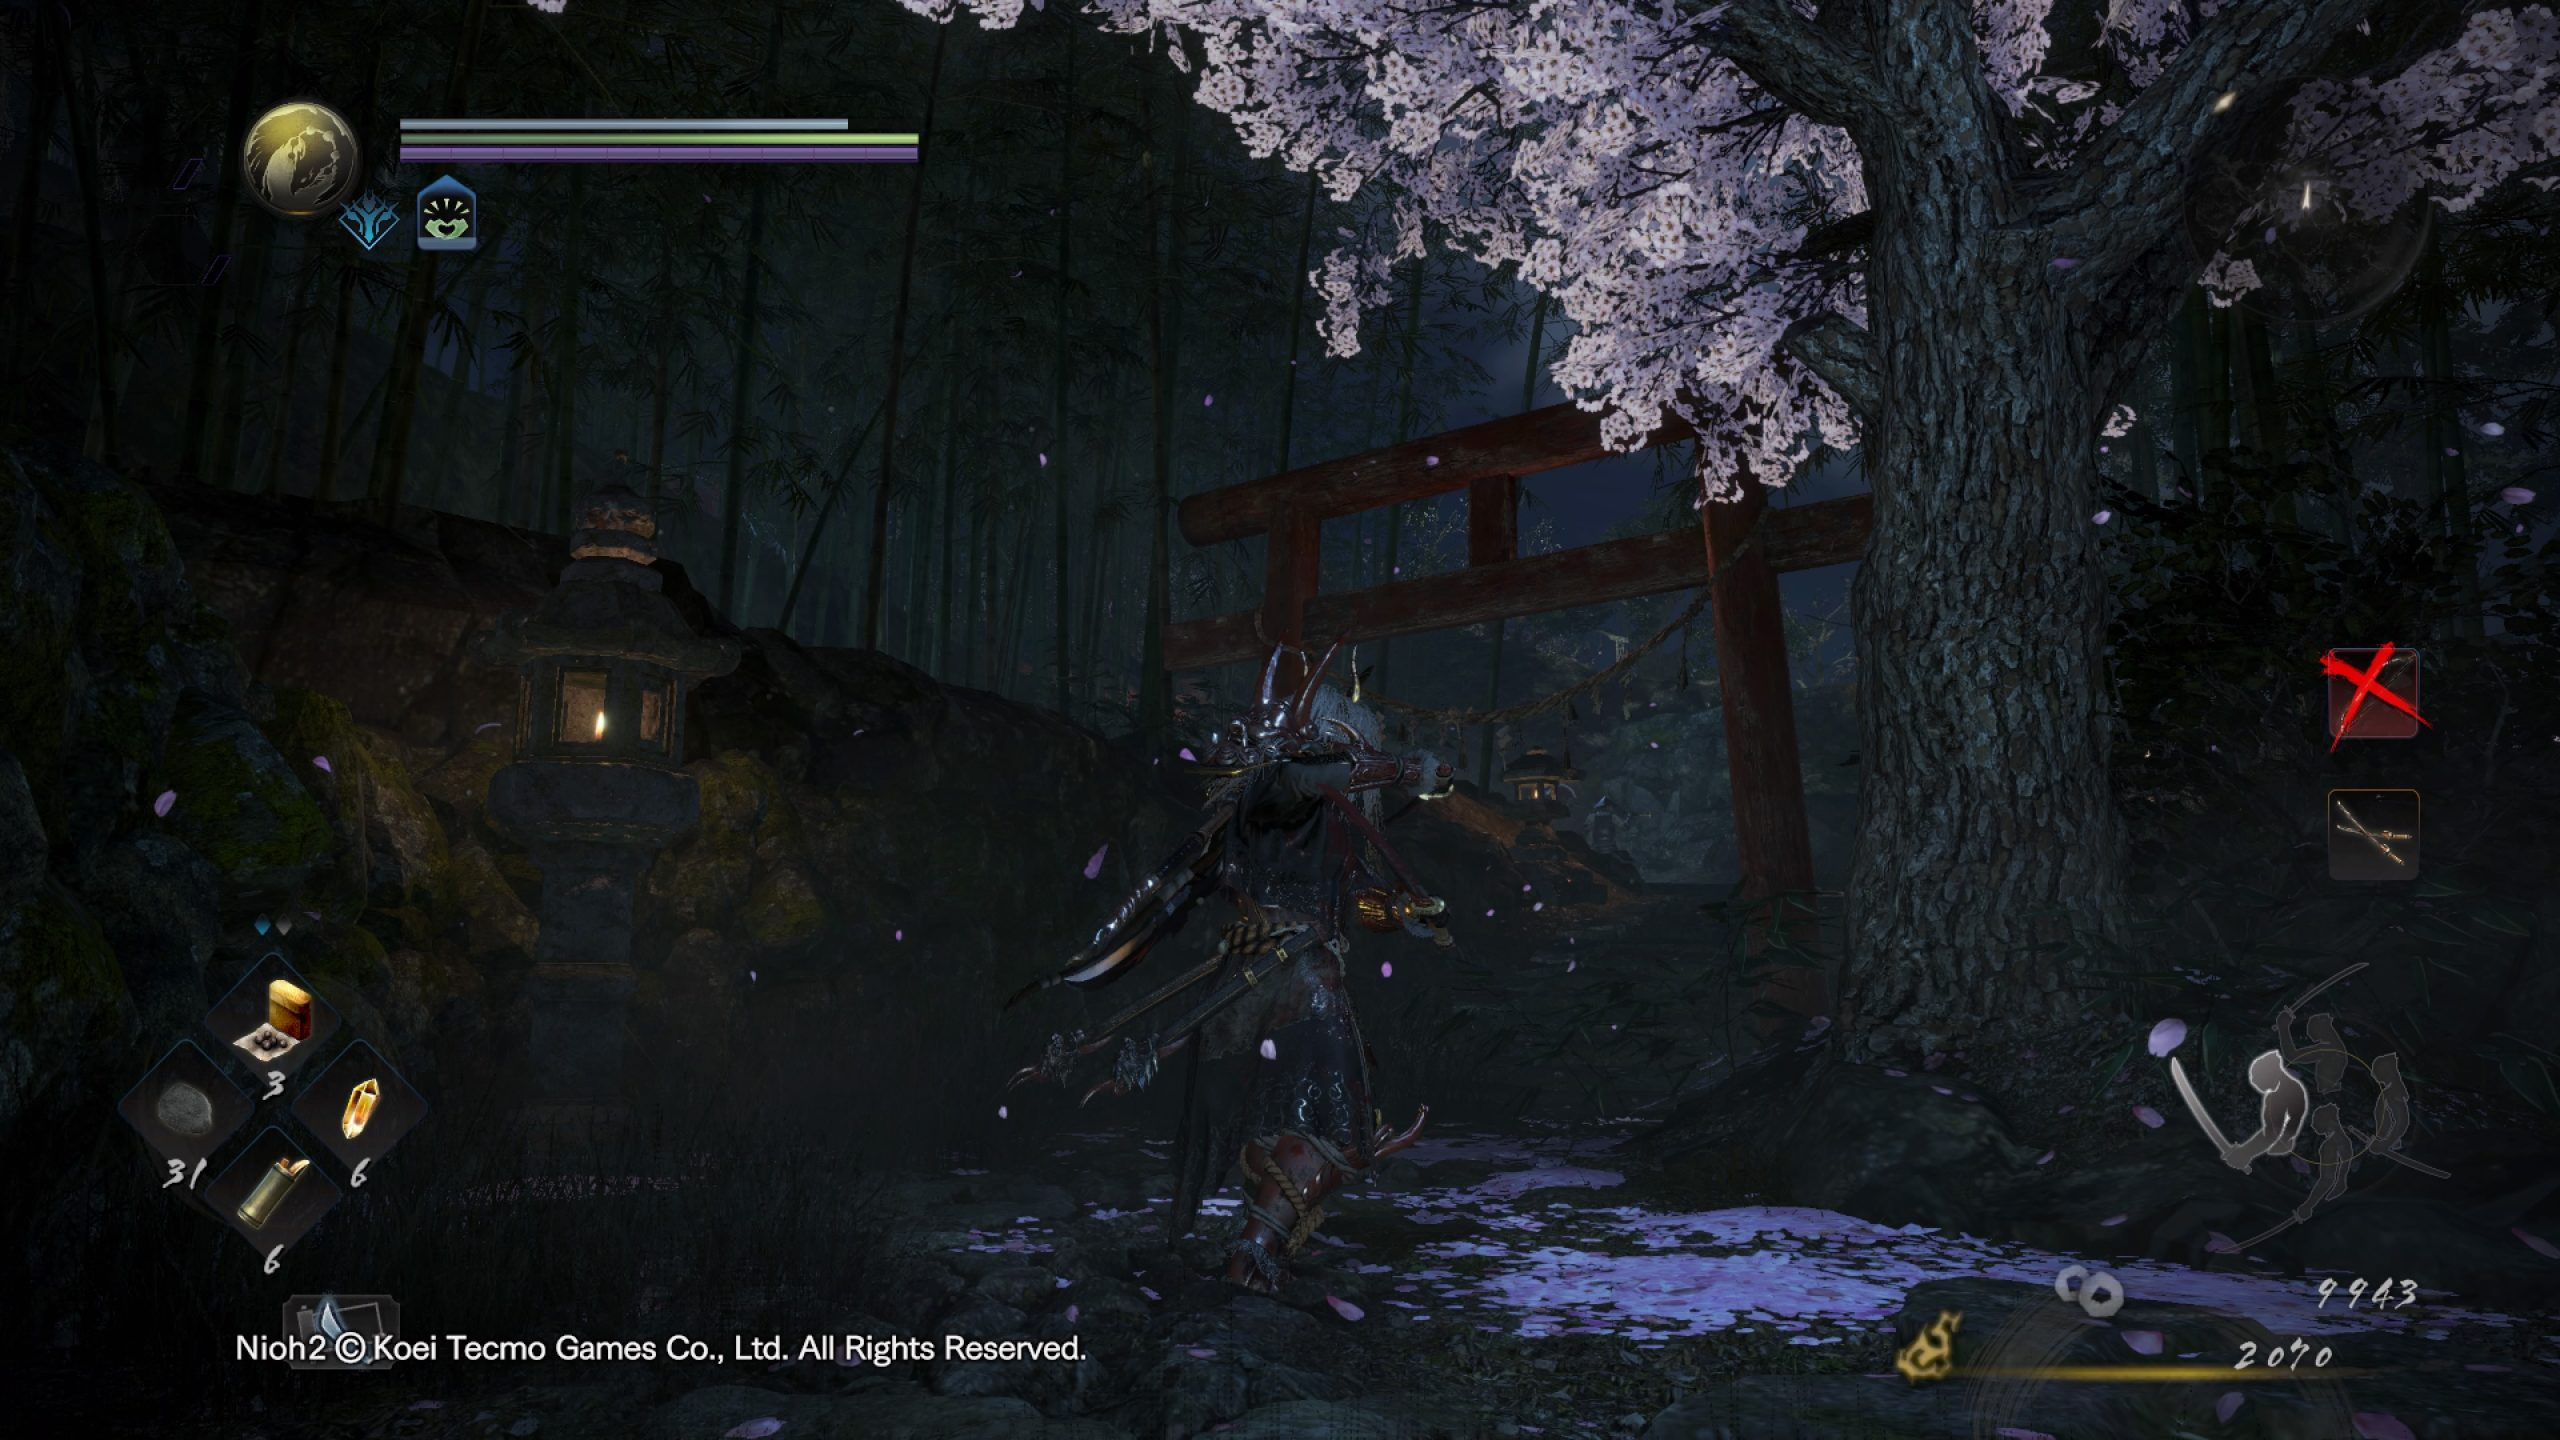 Nioh-2-Remastered-The-Complete-Edition_20210207182020-scaled Mon avis sur Nioh Collection